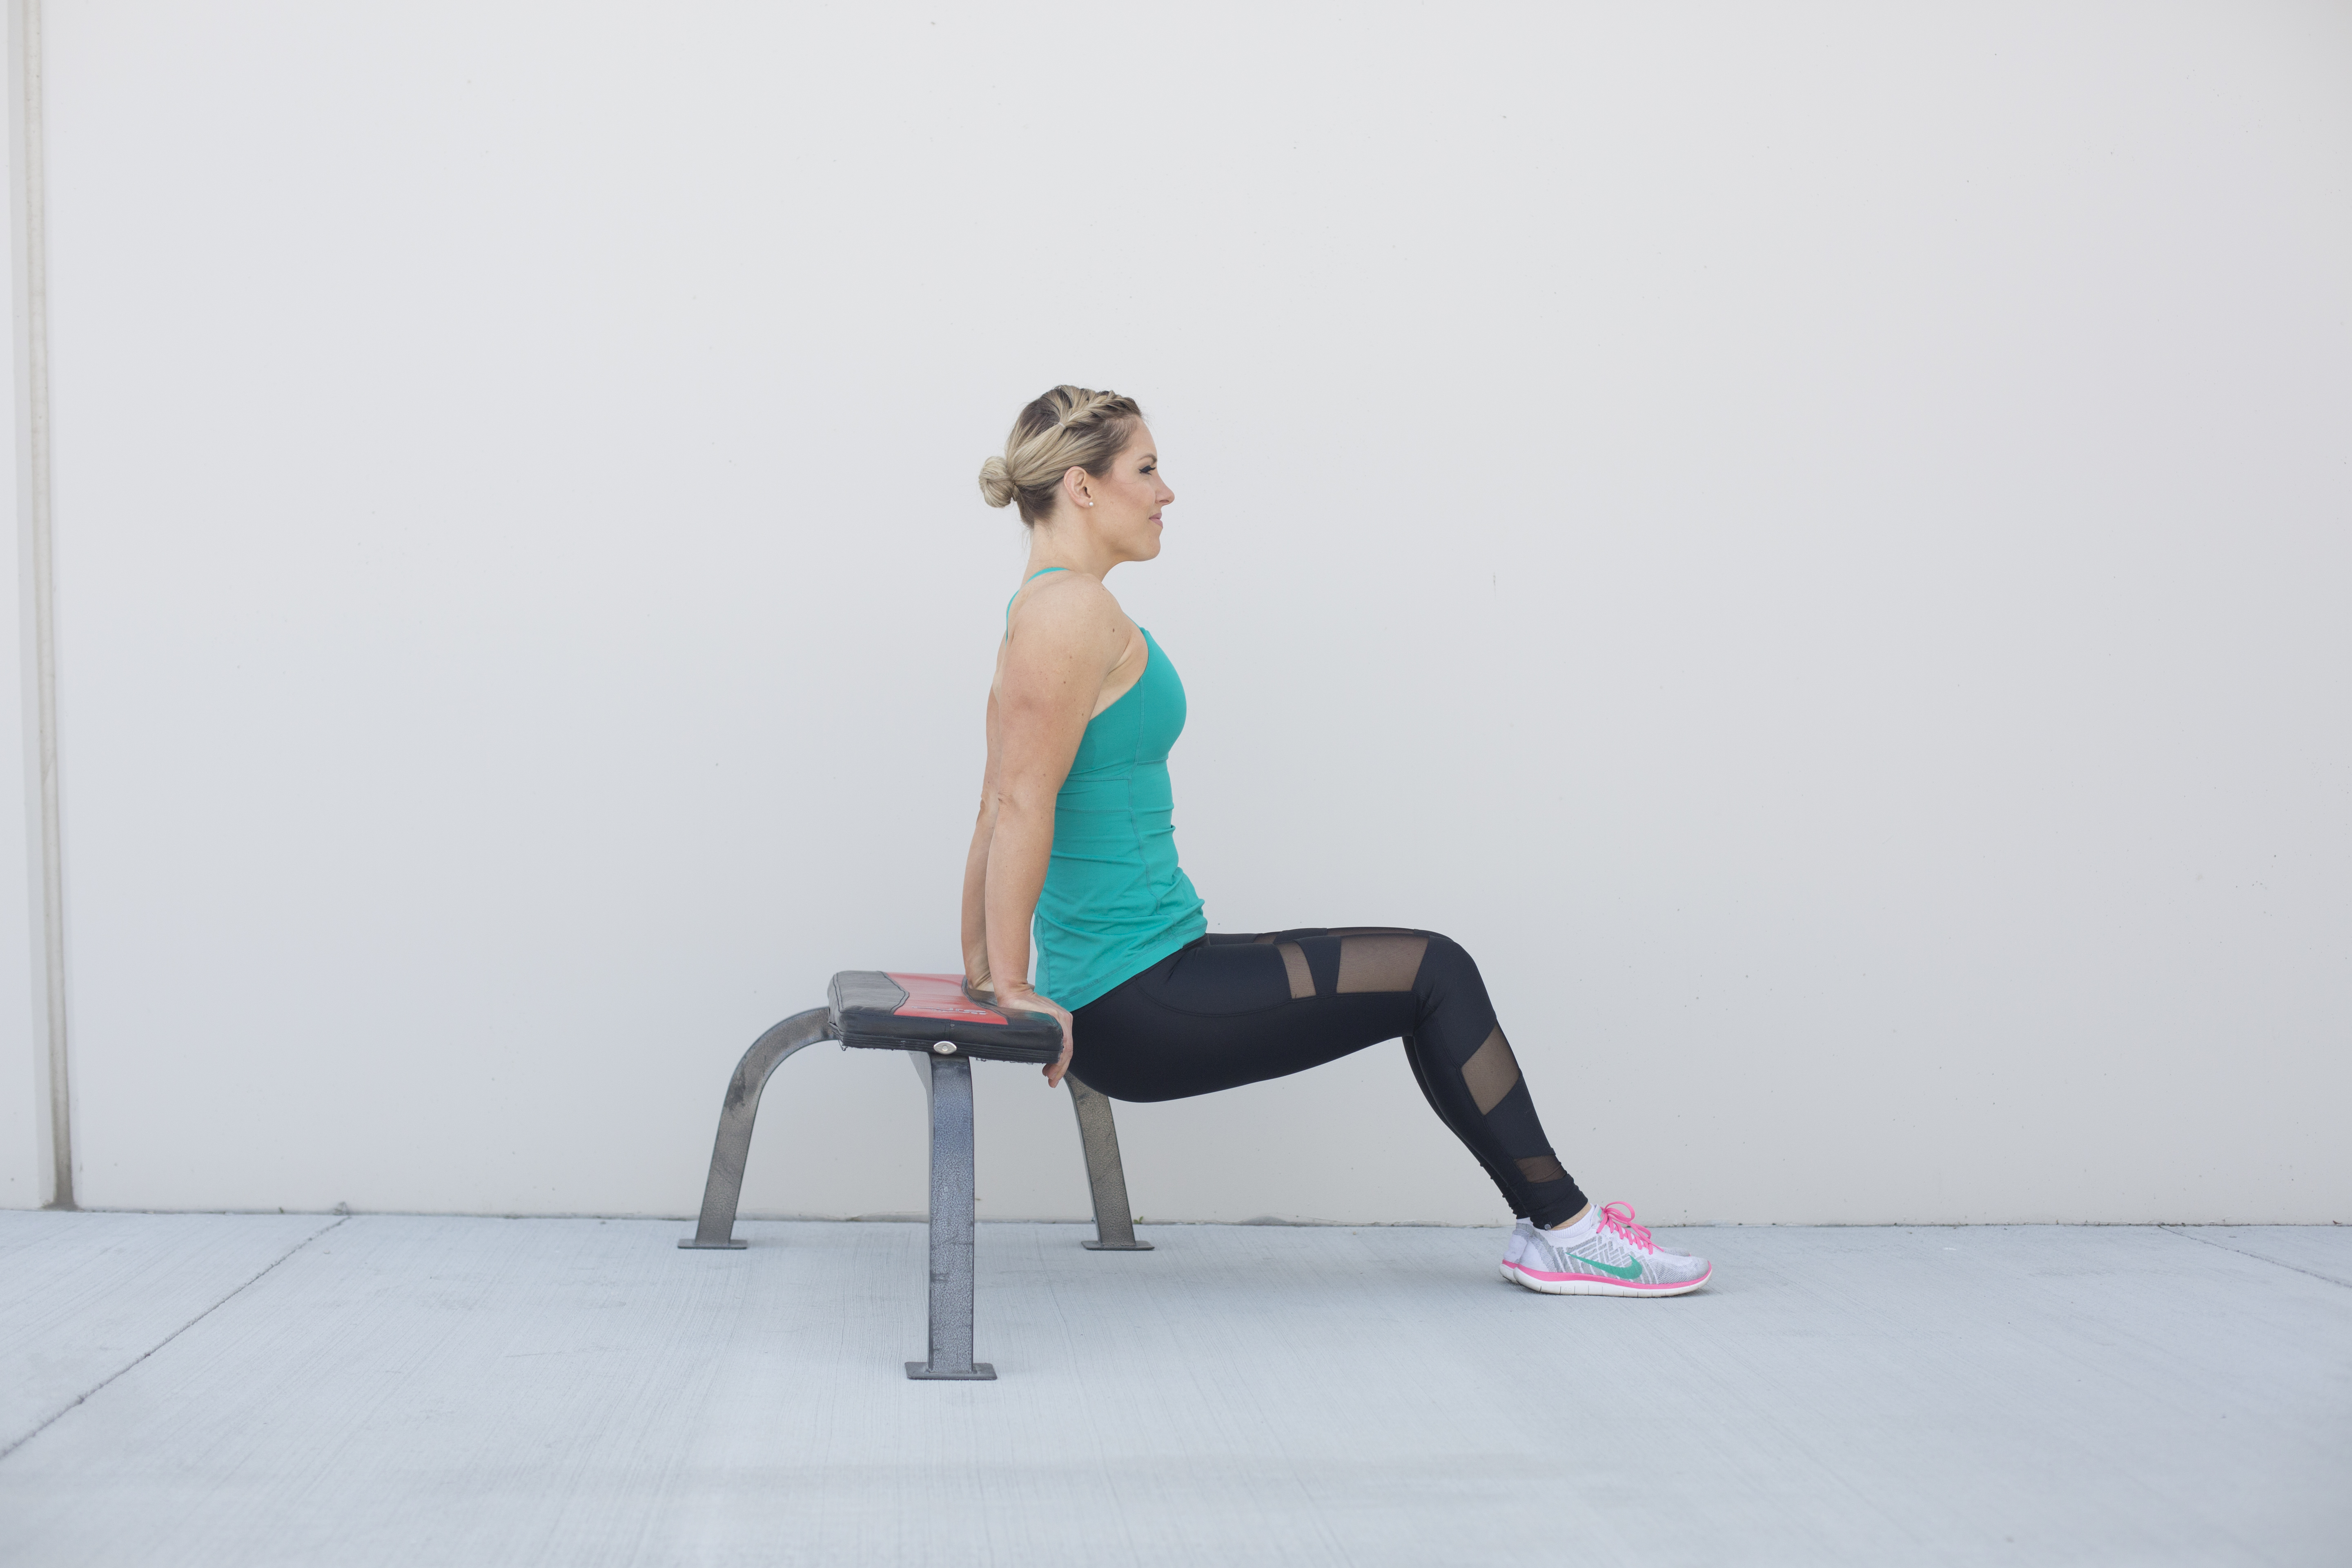 Tricep Dip Exercise Form Step 1